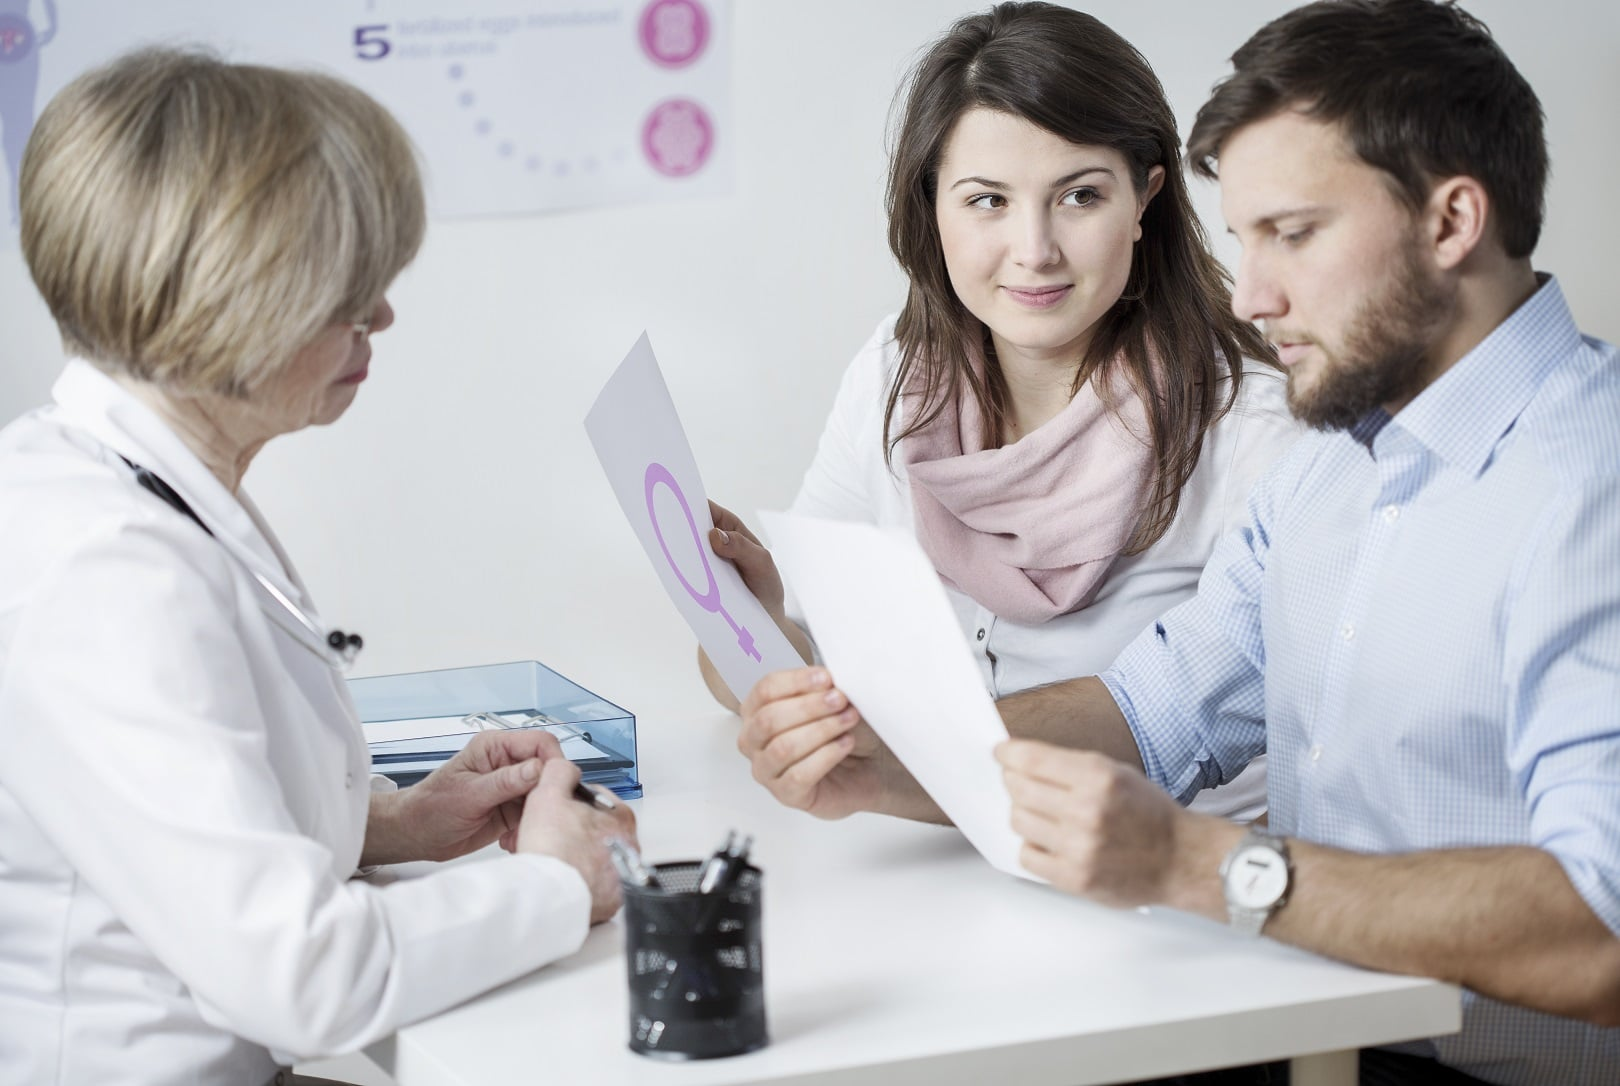 Who Need IVF Treatment - 5 Things You Should Know about Reproductive Healthcare